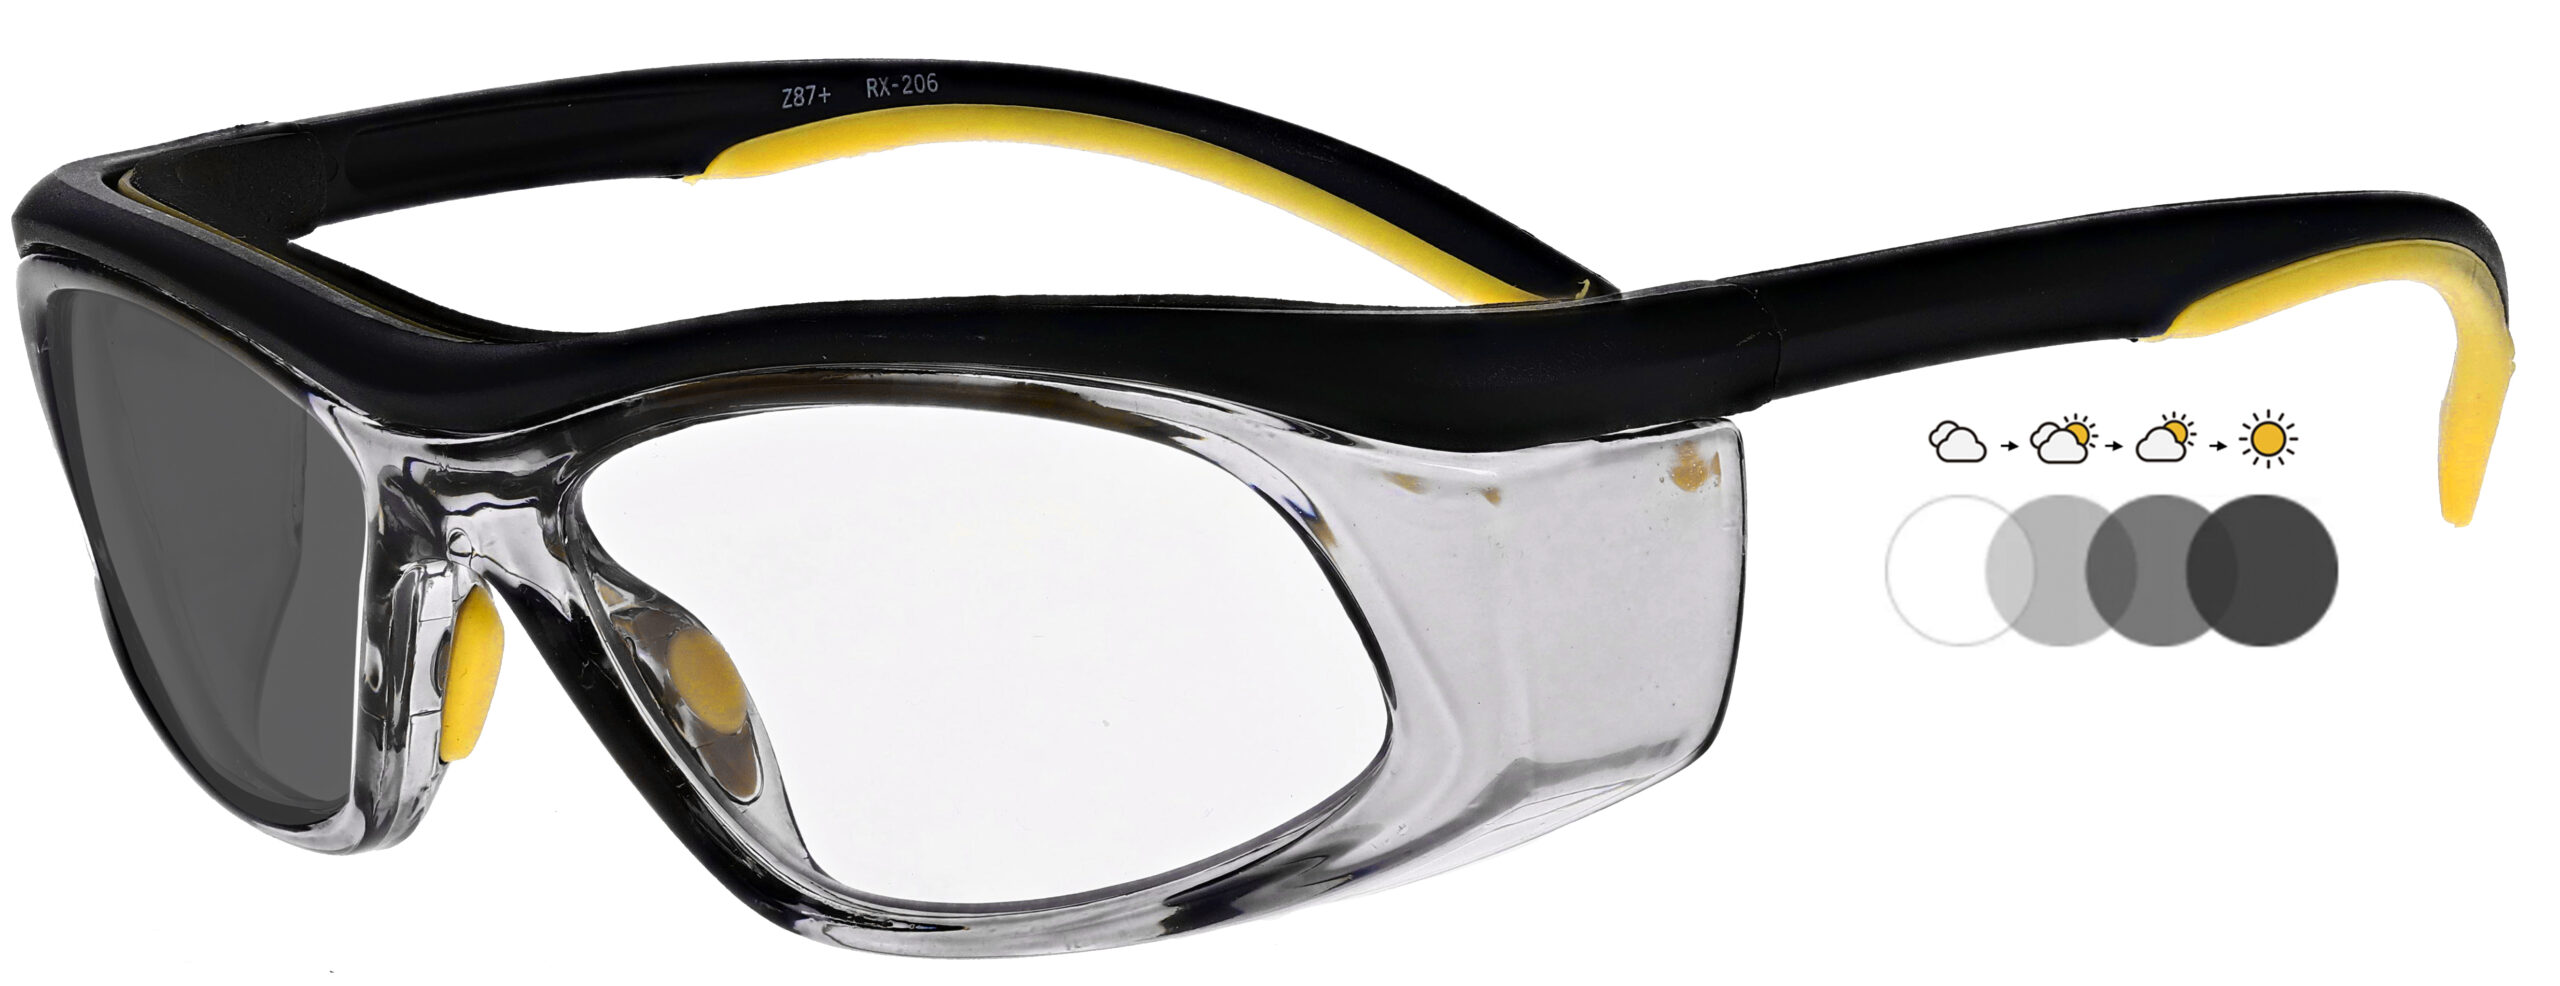 Photochromic Safety Glasses in Black Yellow Frame with Transition Lenses, Angled to the Side Left - Rx Safety